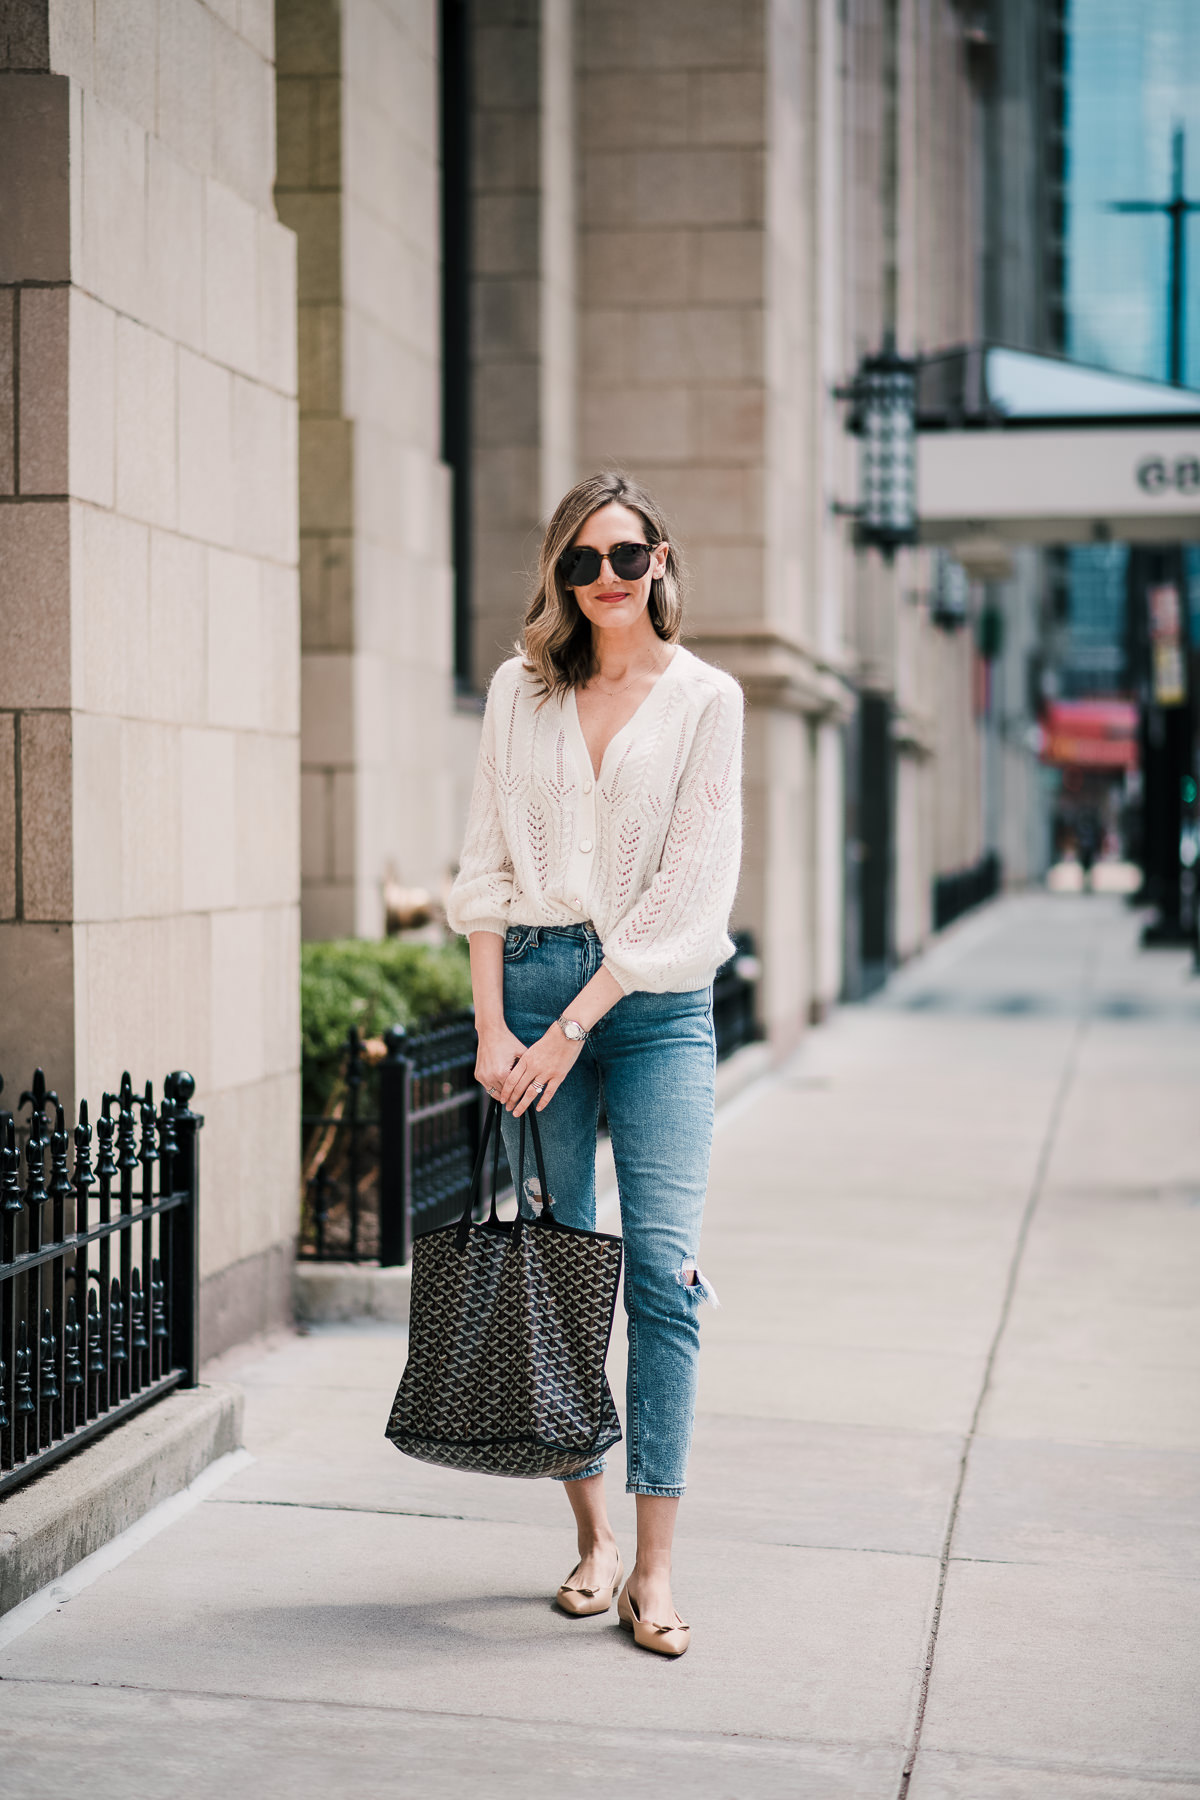 pointy flats with jeans